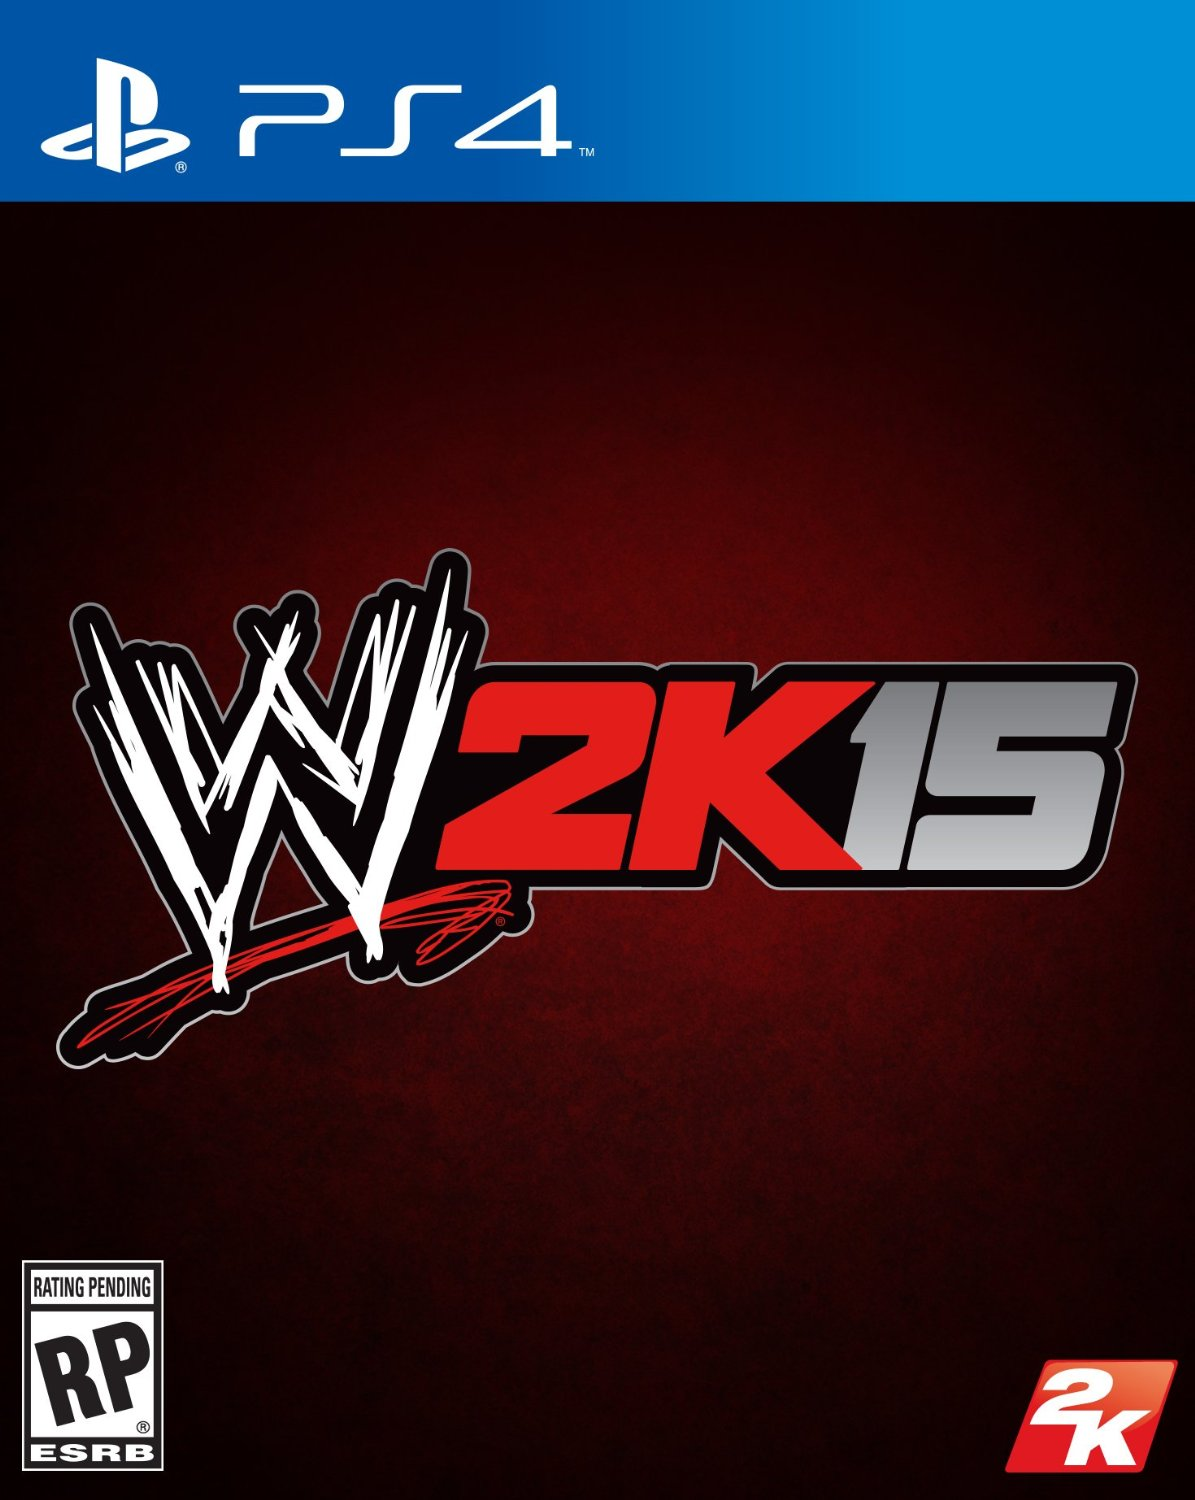 Wwe 2k15 Listed On Amazon With An October Release Date League Of